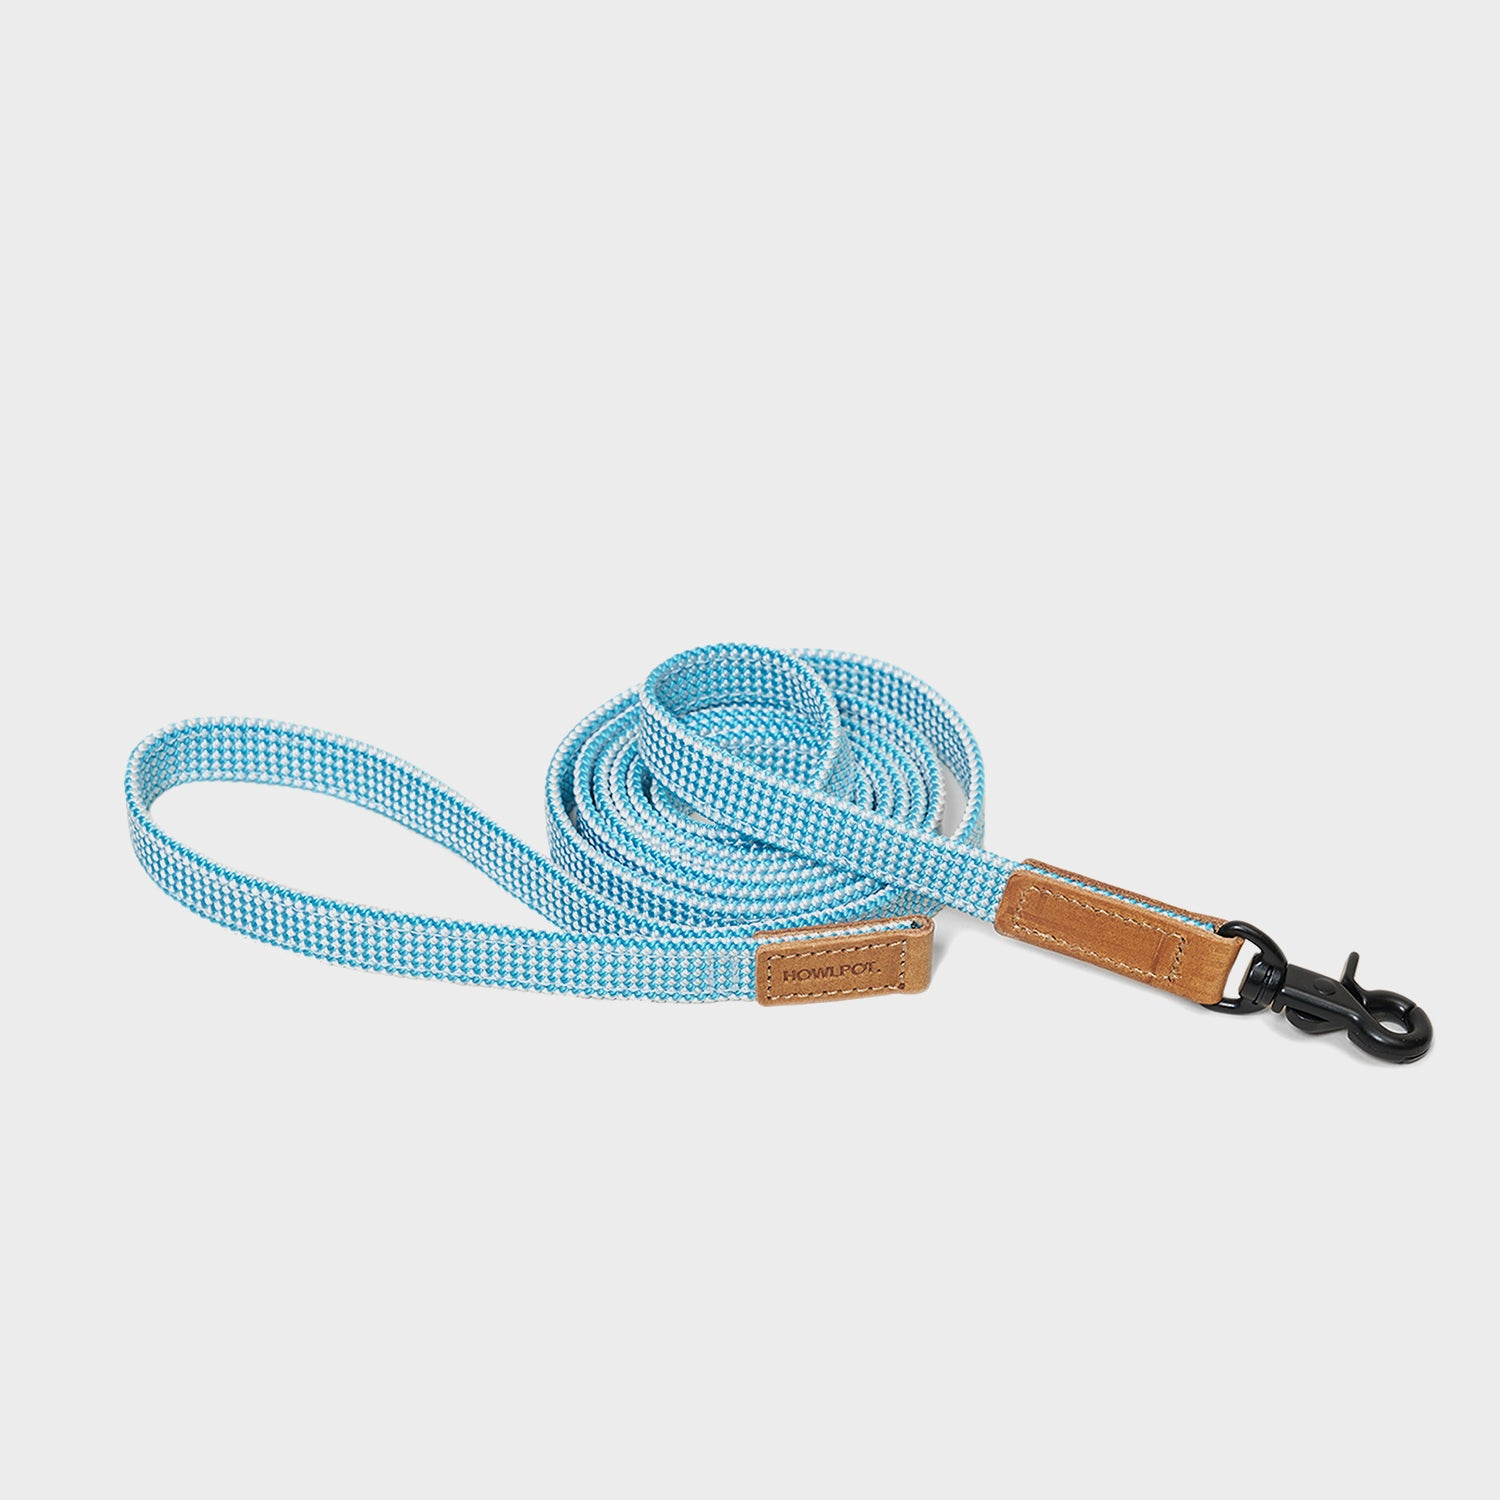 [Howlpot] We Are Tight Ribbon Leash - Cloud Bay